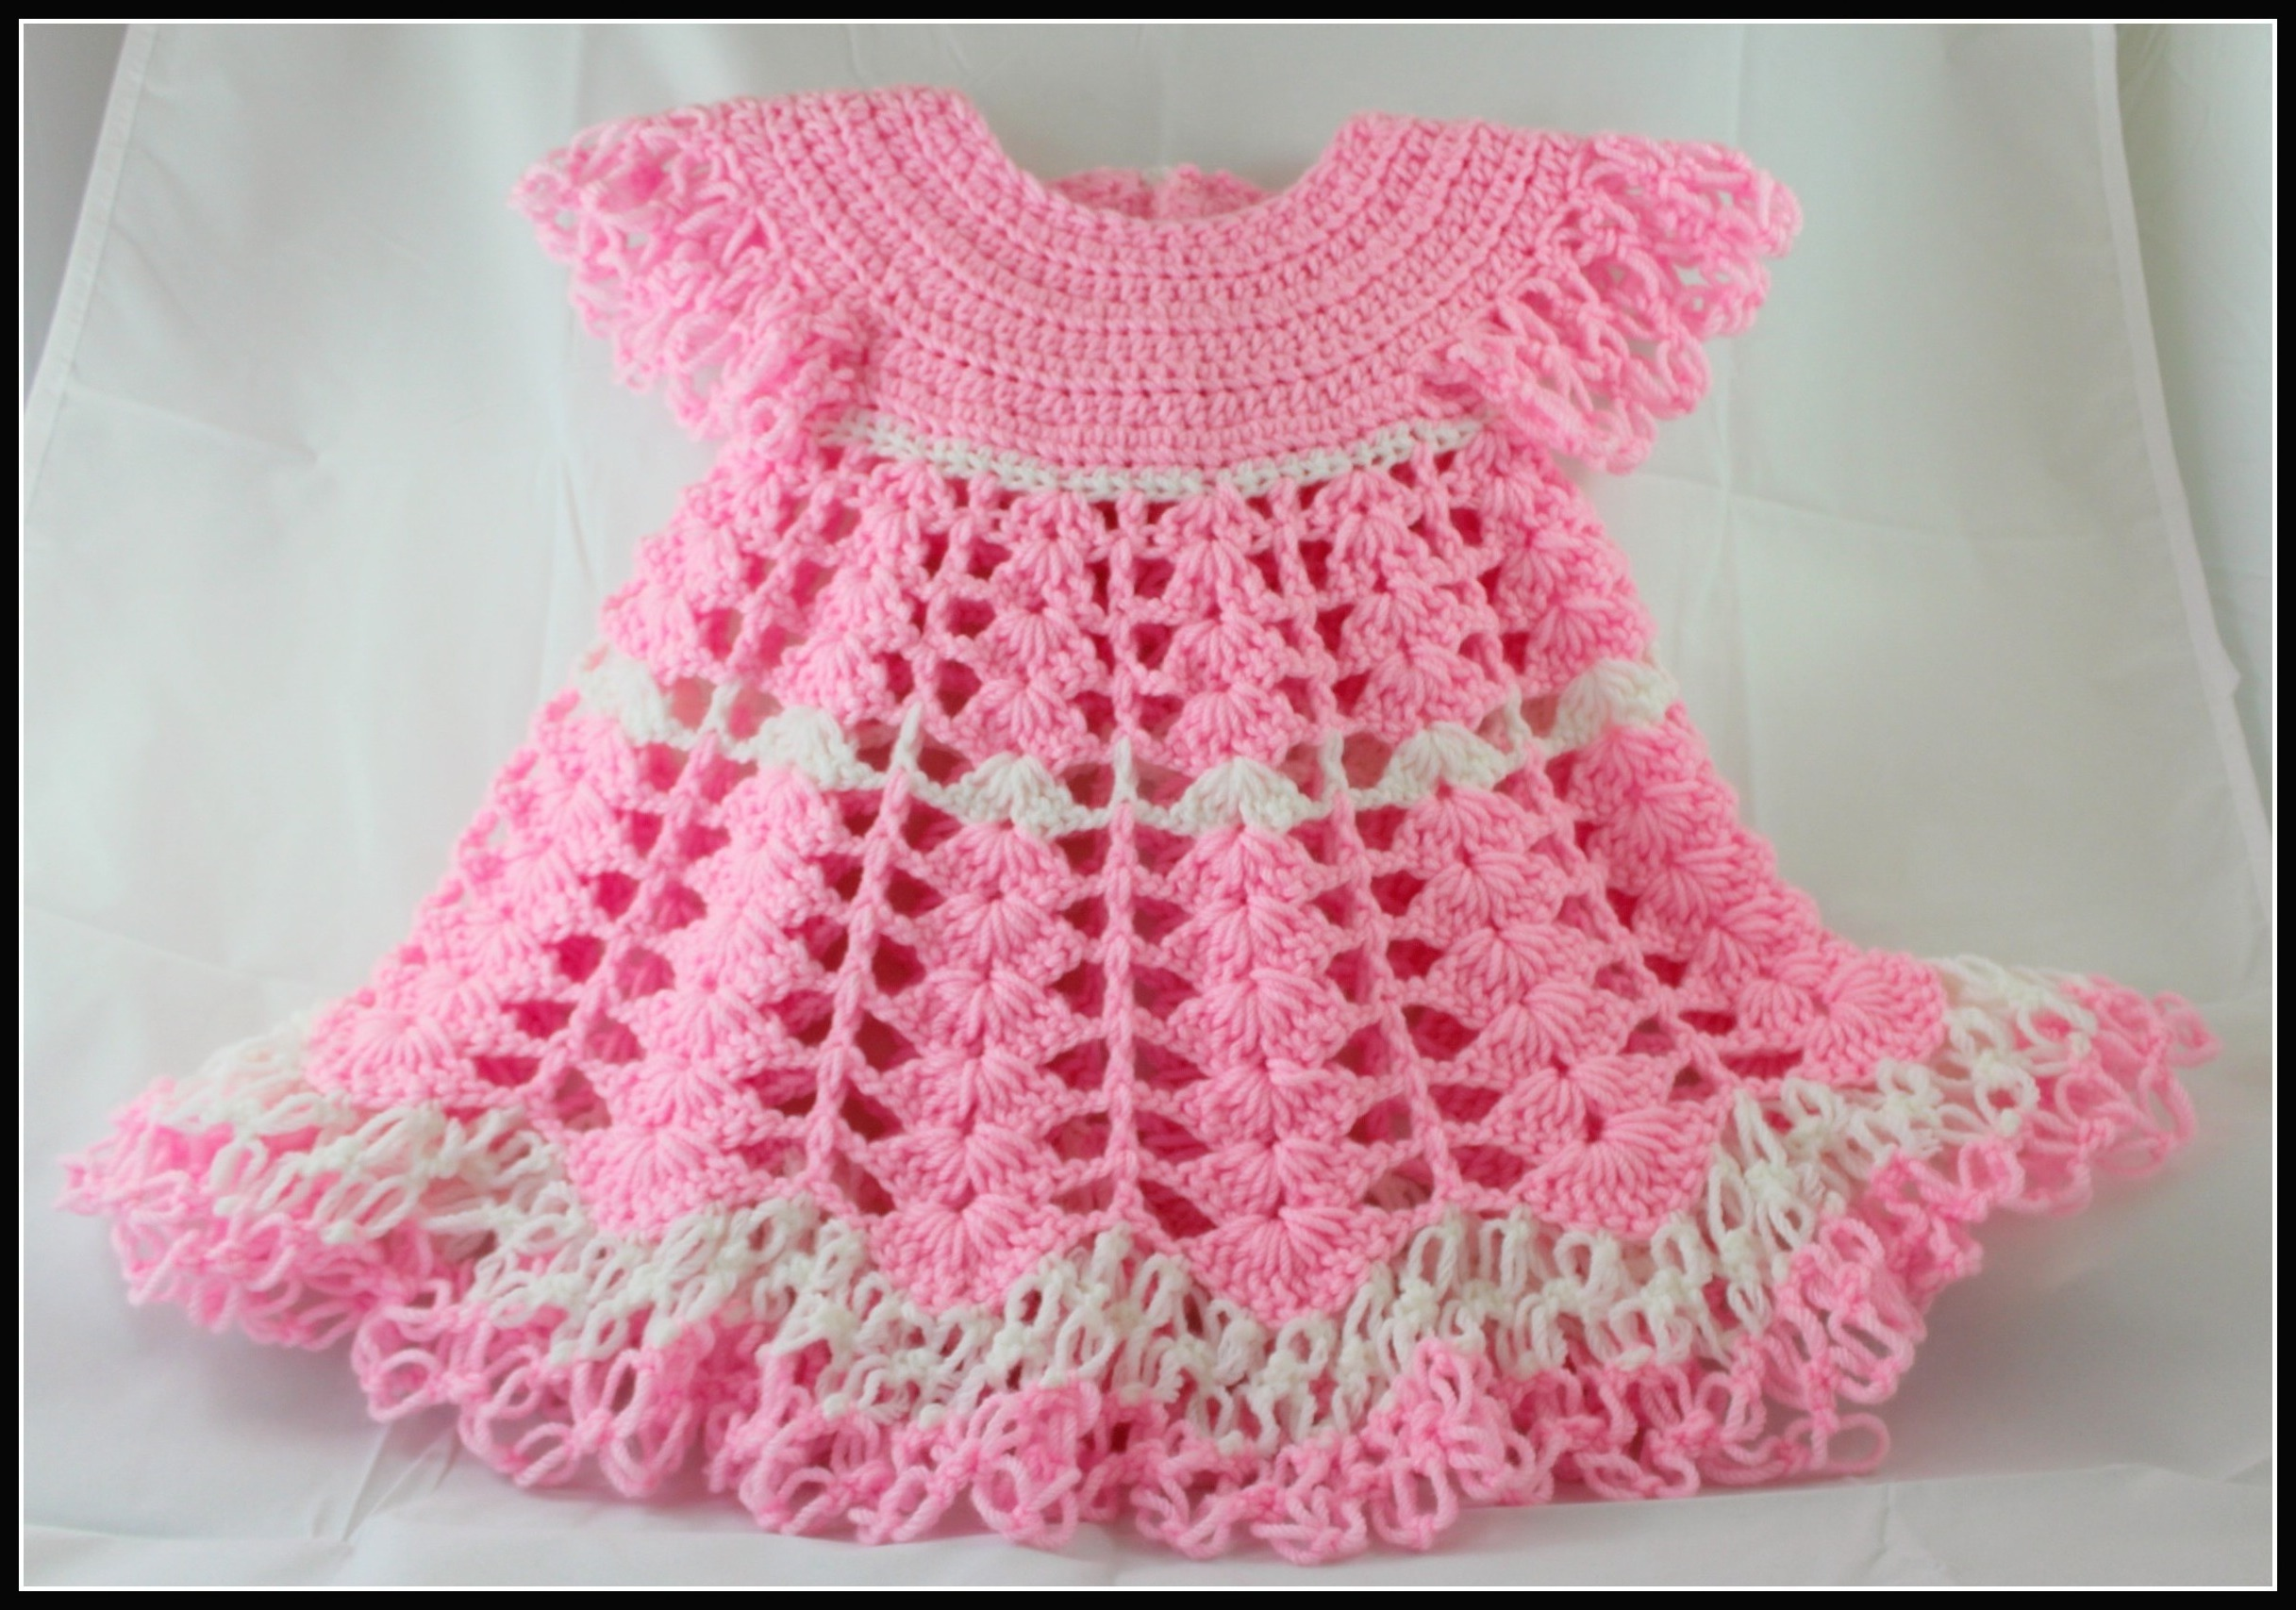 crochet baby dress by yolanda soto-lopez eebfhlm